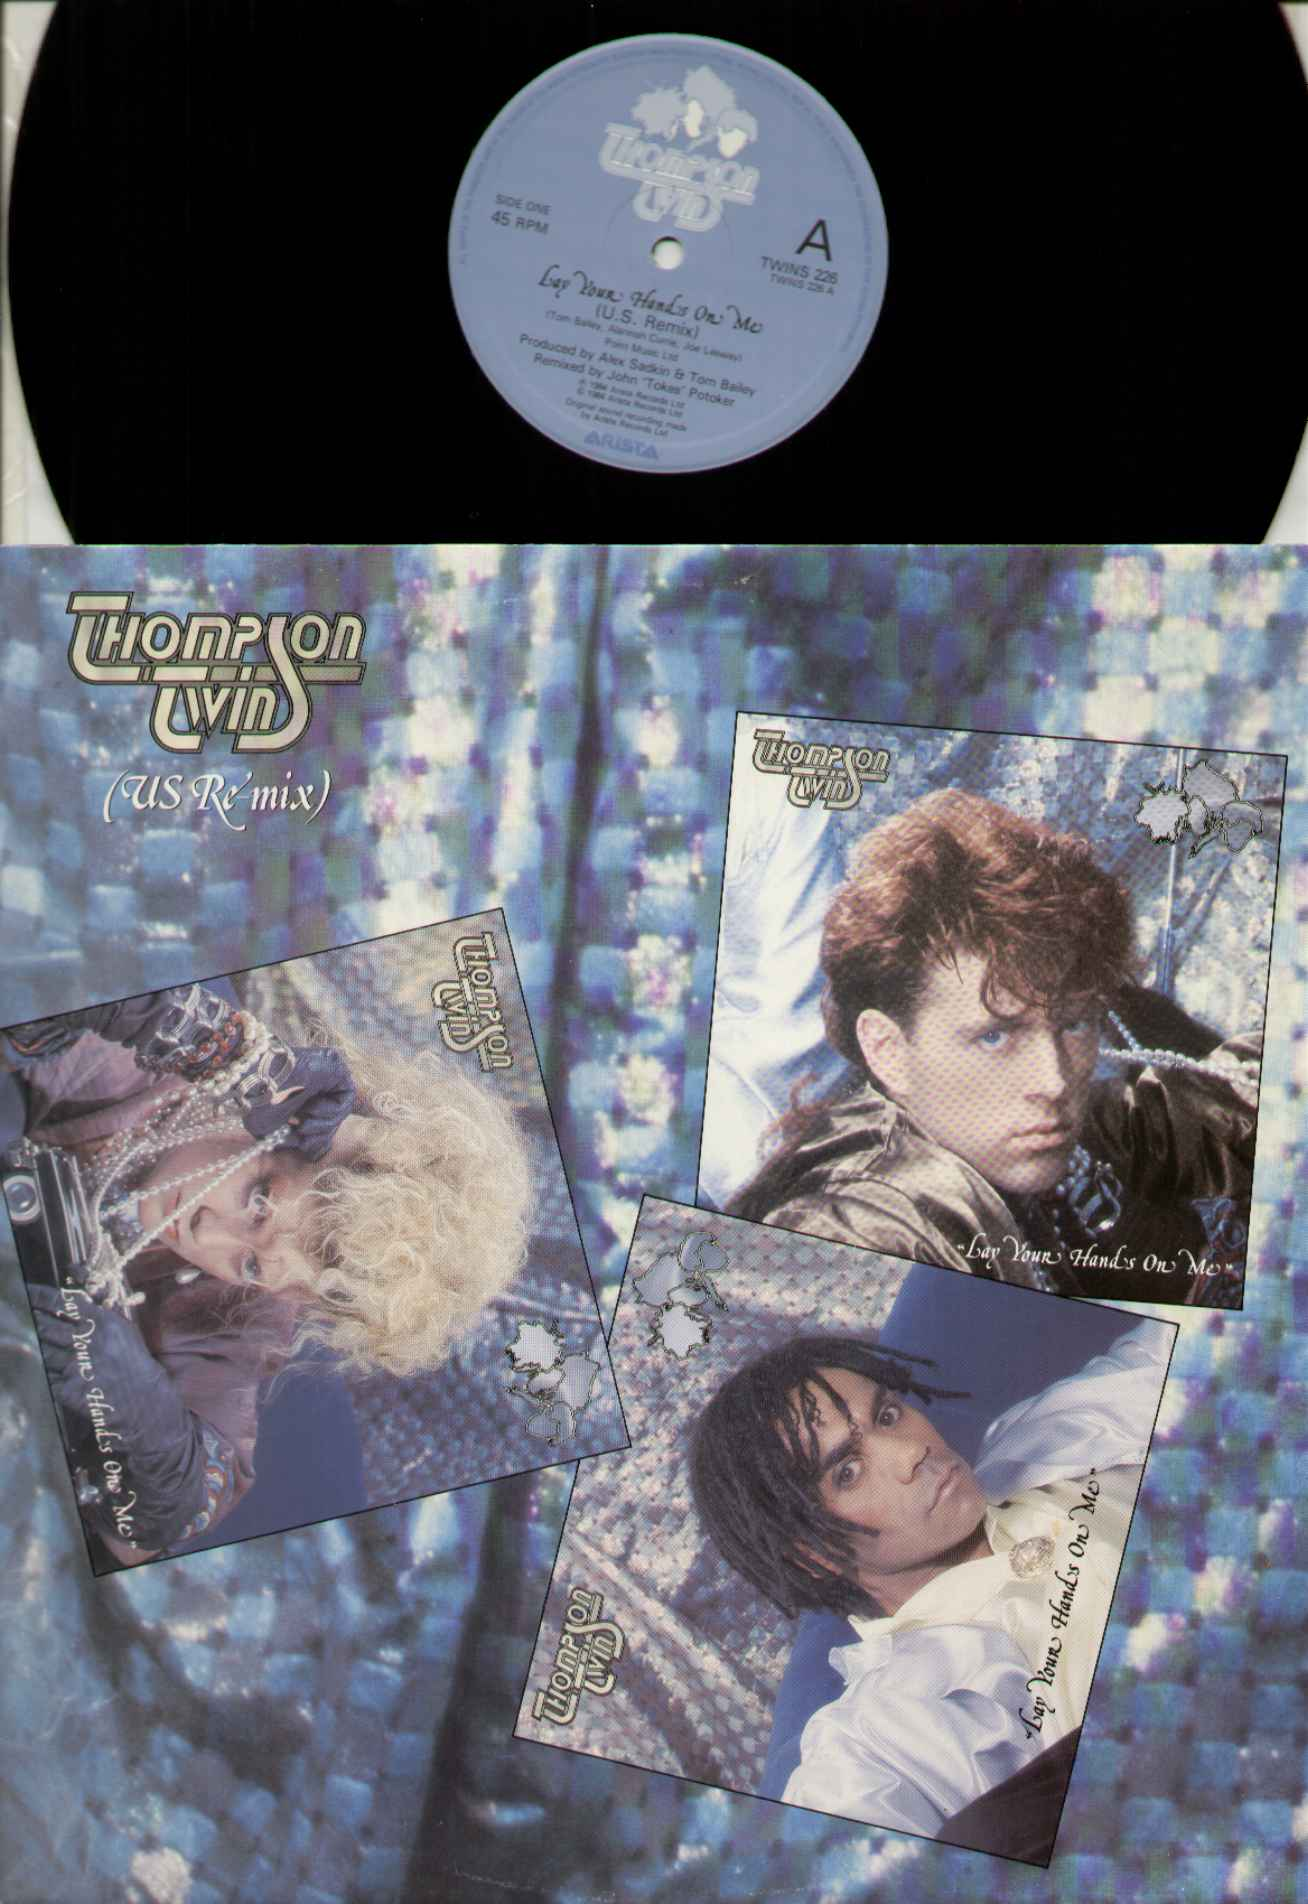 Thompson Twins Lay+Your+Hands+On+Me 12''